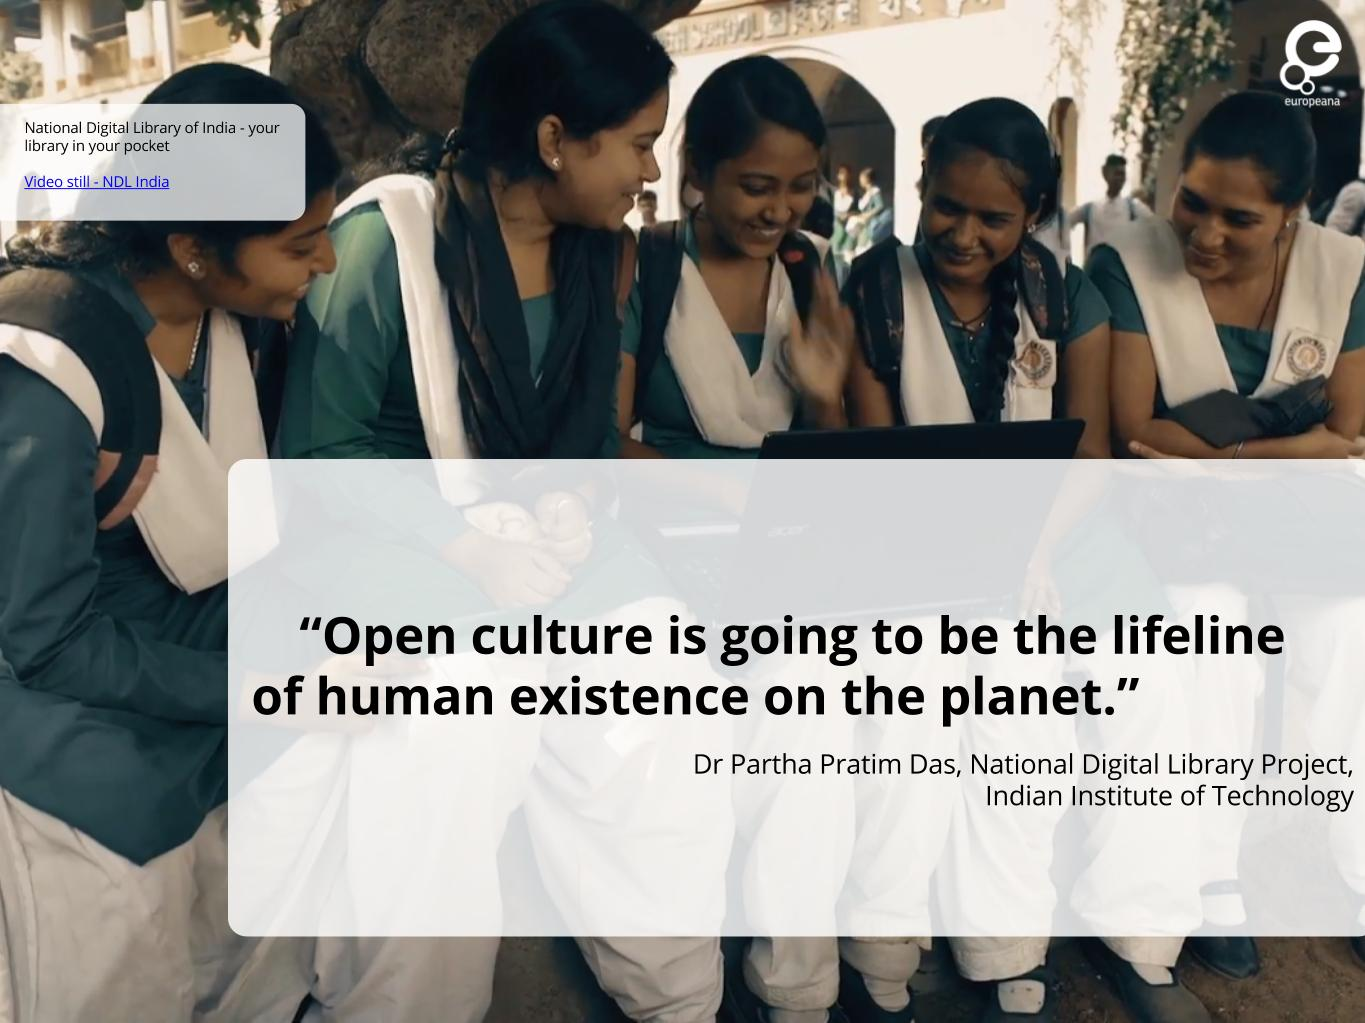 Quote from Dr Partha Pratim Das - 'Open culture is going to be the lifeline of human existence on the planet'